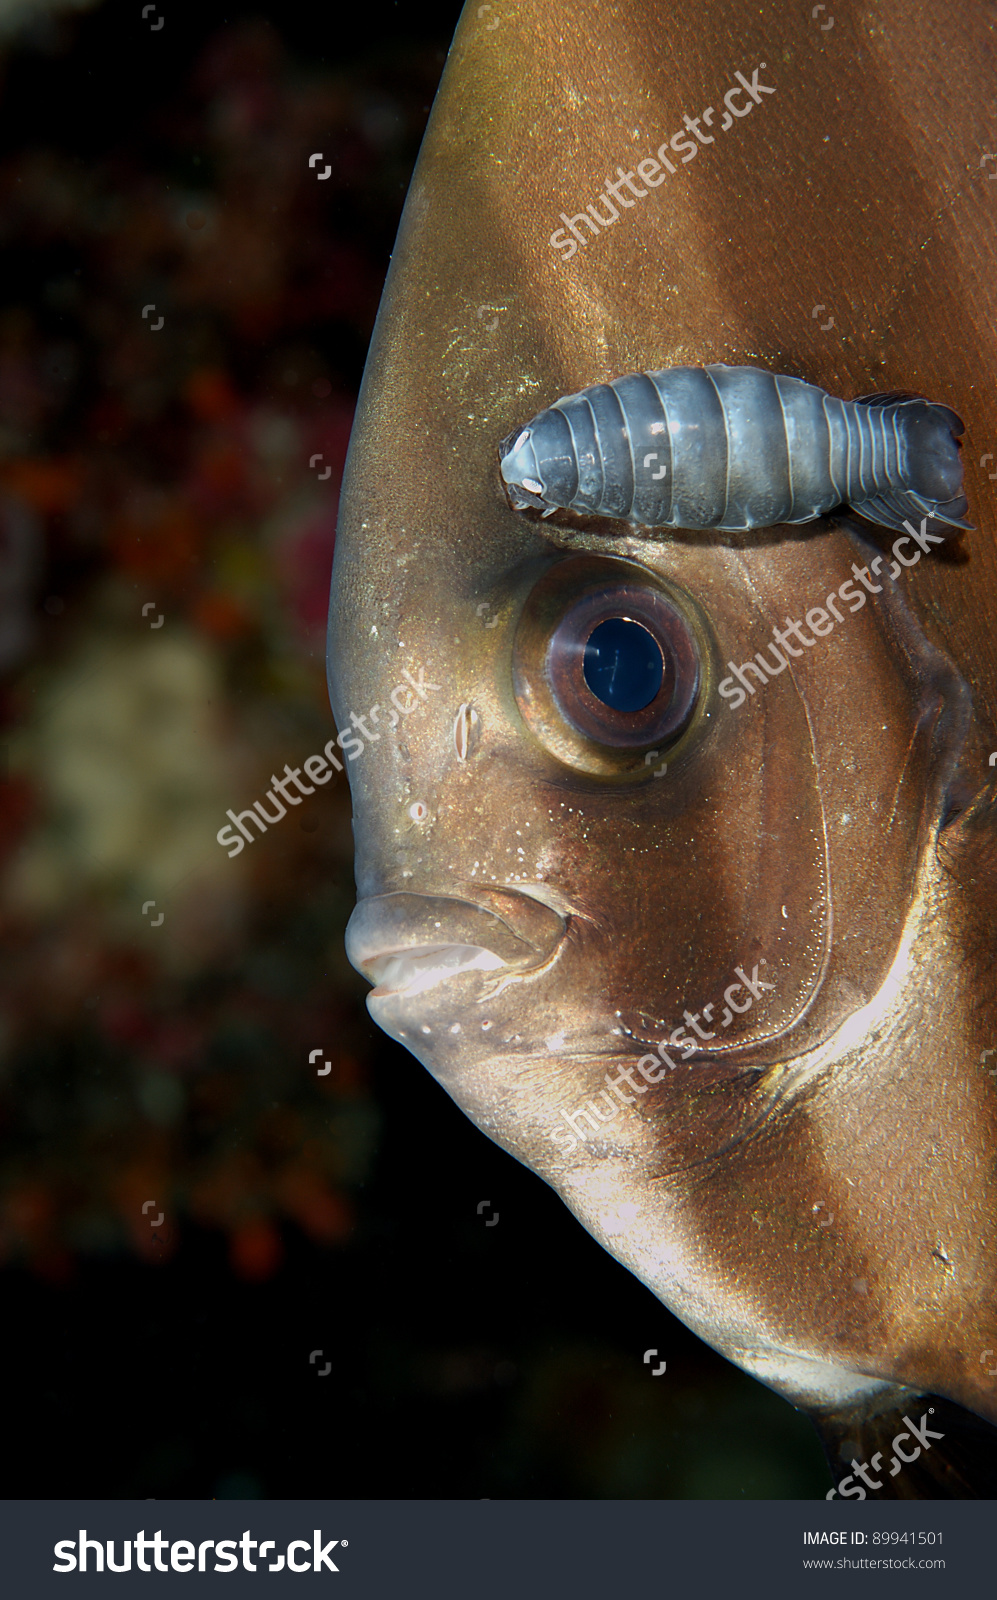 Batfish Copepod Stock Photo 89941501.